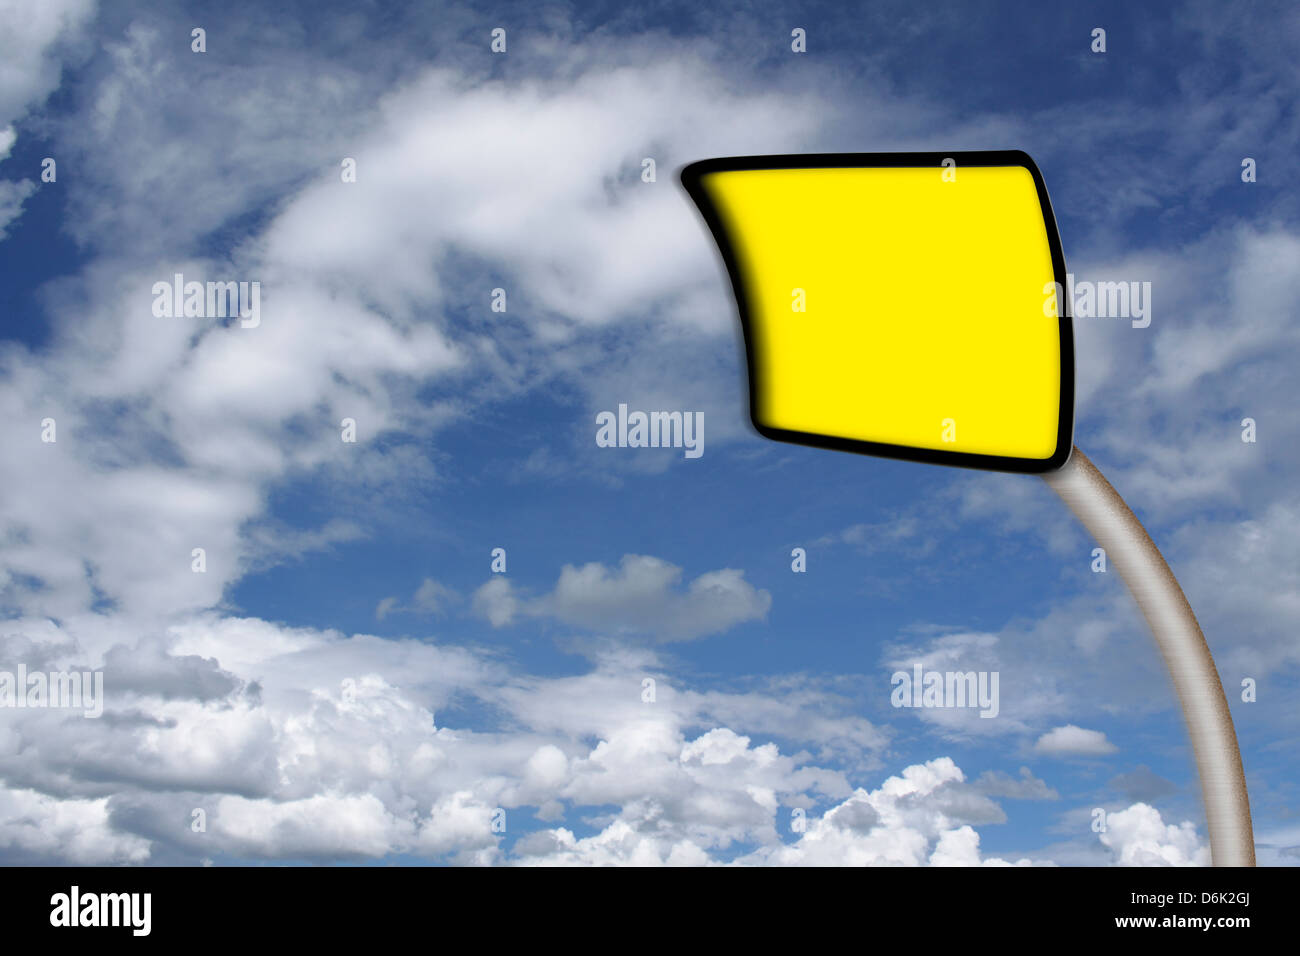 distortion traffic sign on blue sky with cloud - Stock Image